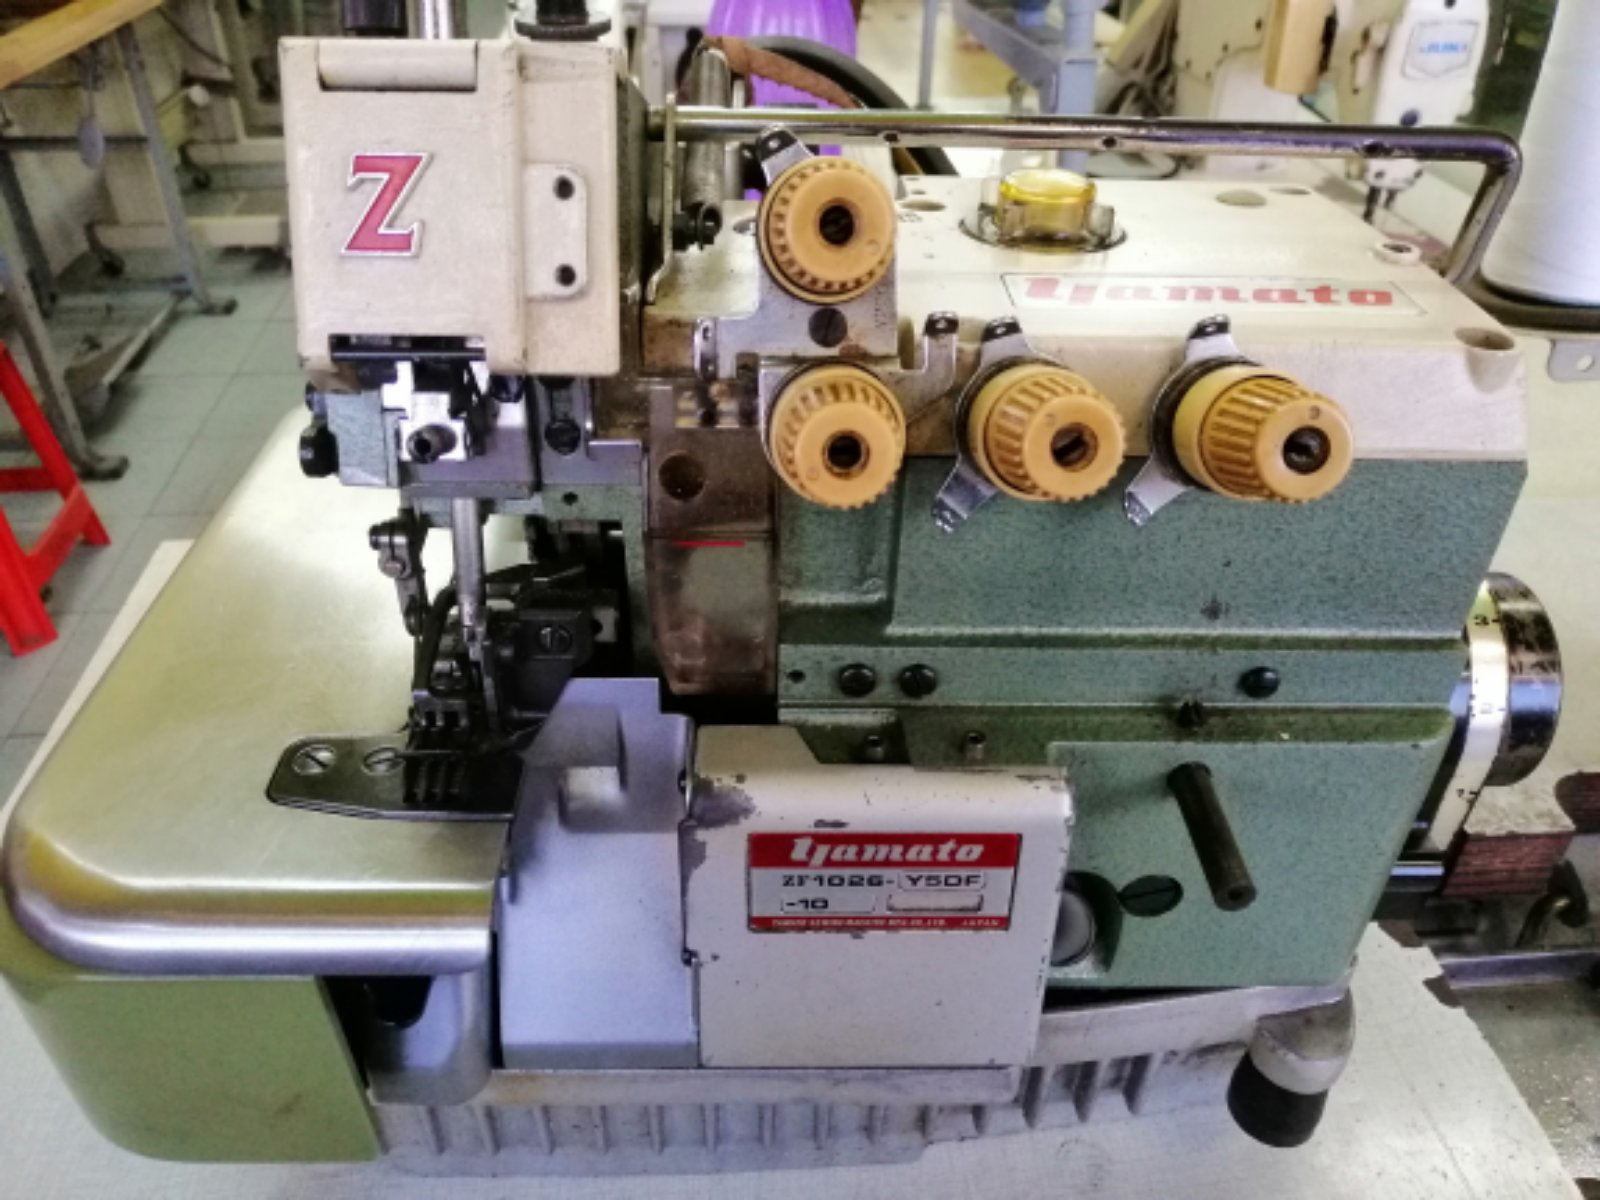 Second-hand Yamato Industrial Overlock Sewing Machine